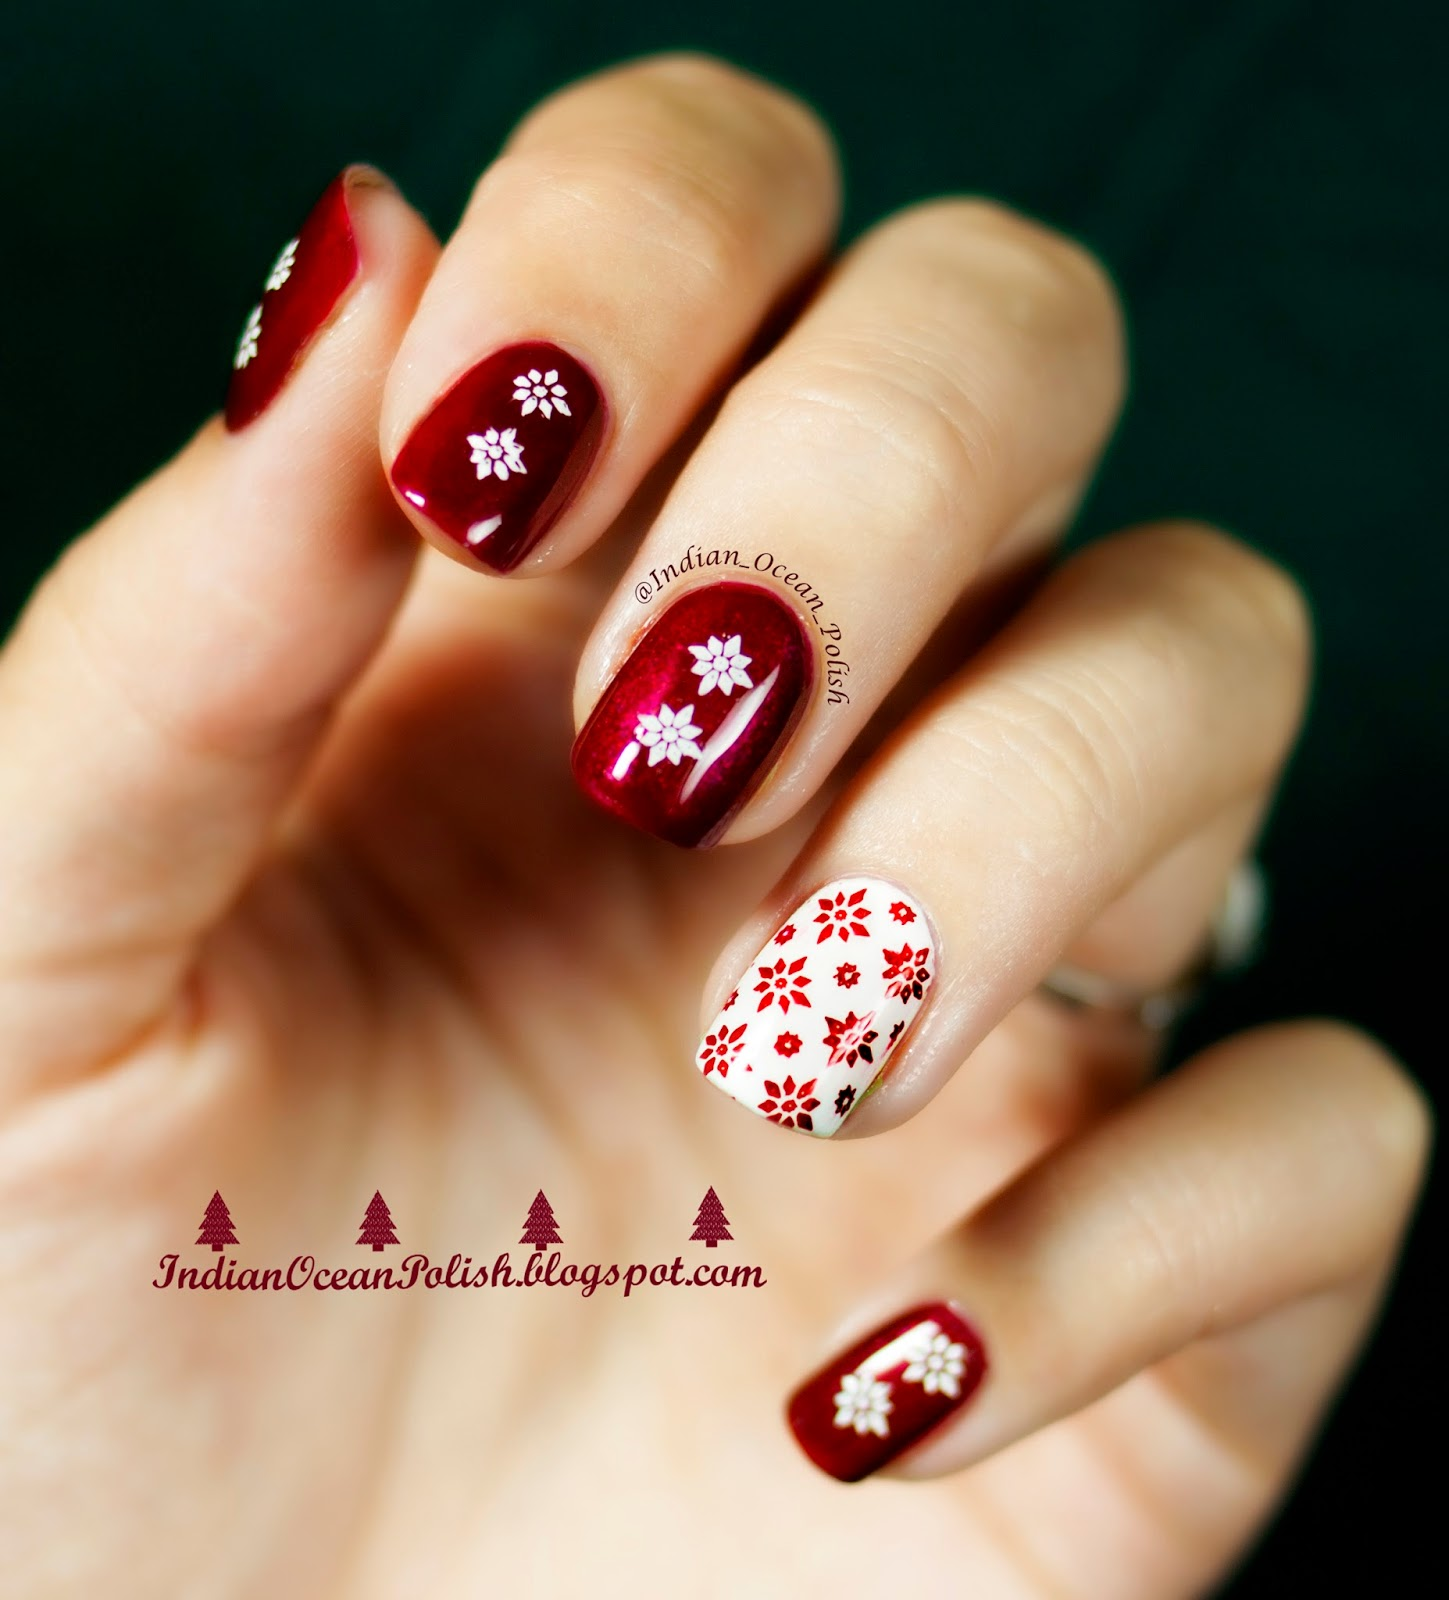 Red Nail Polish On Thumb: Indian Ocean Polish: Christmas 2013 Nail Art Ideas: Simple